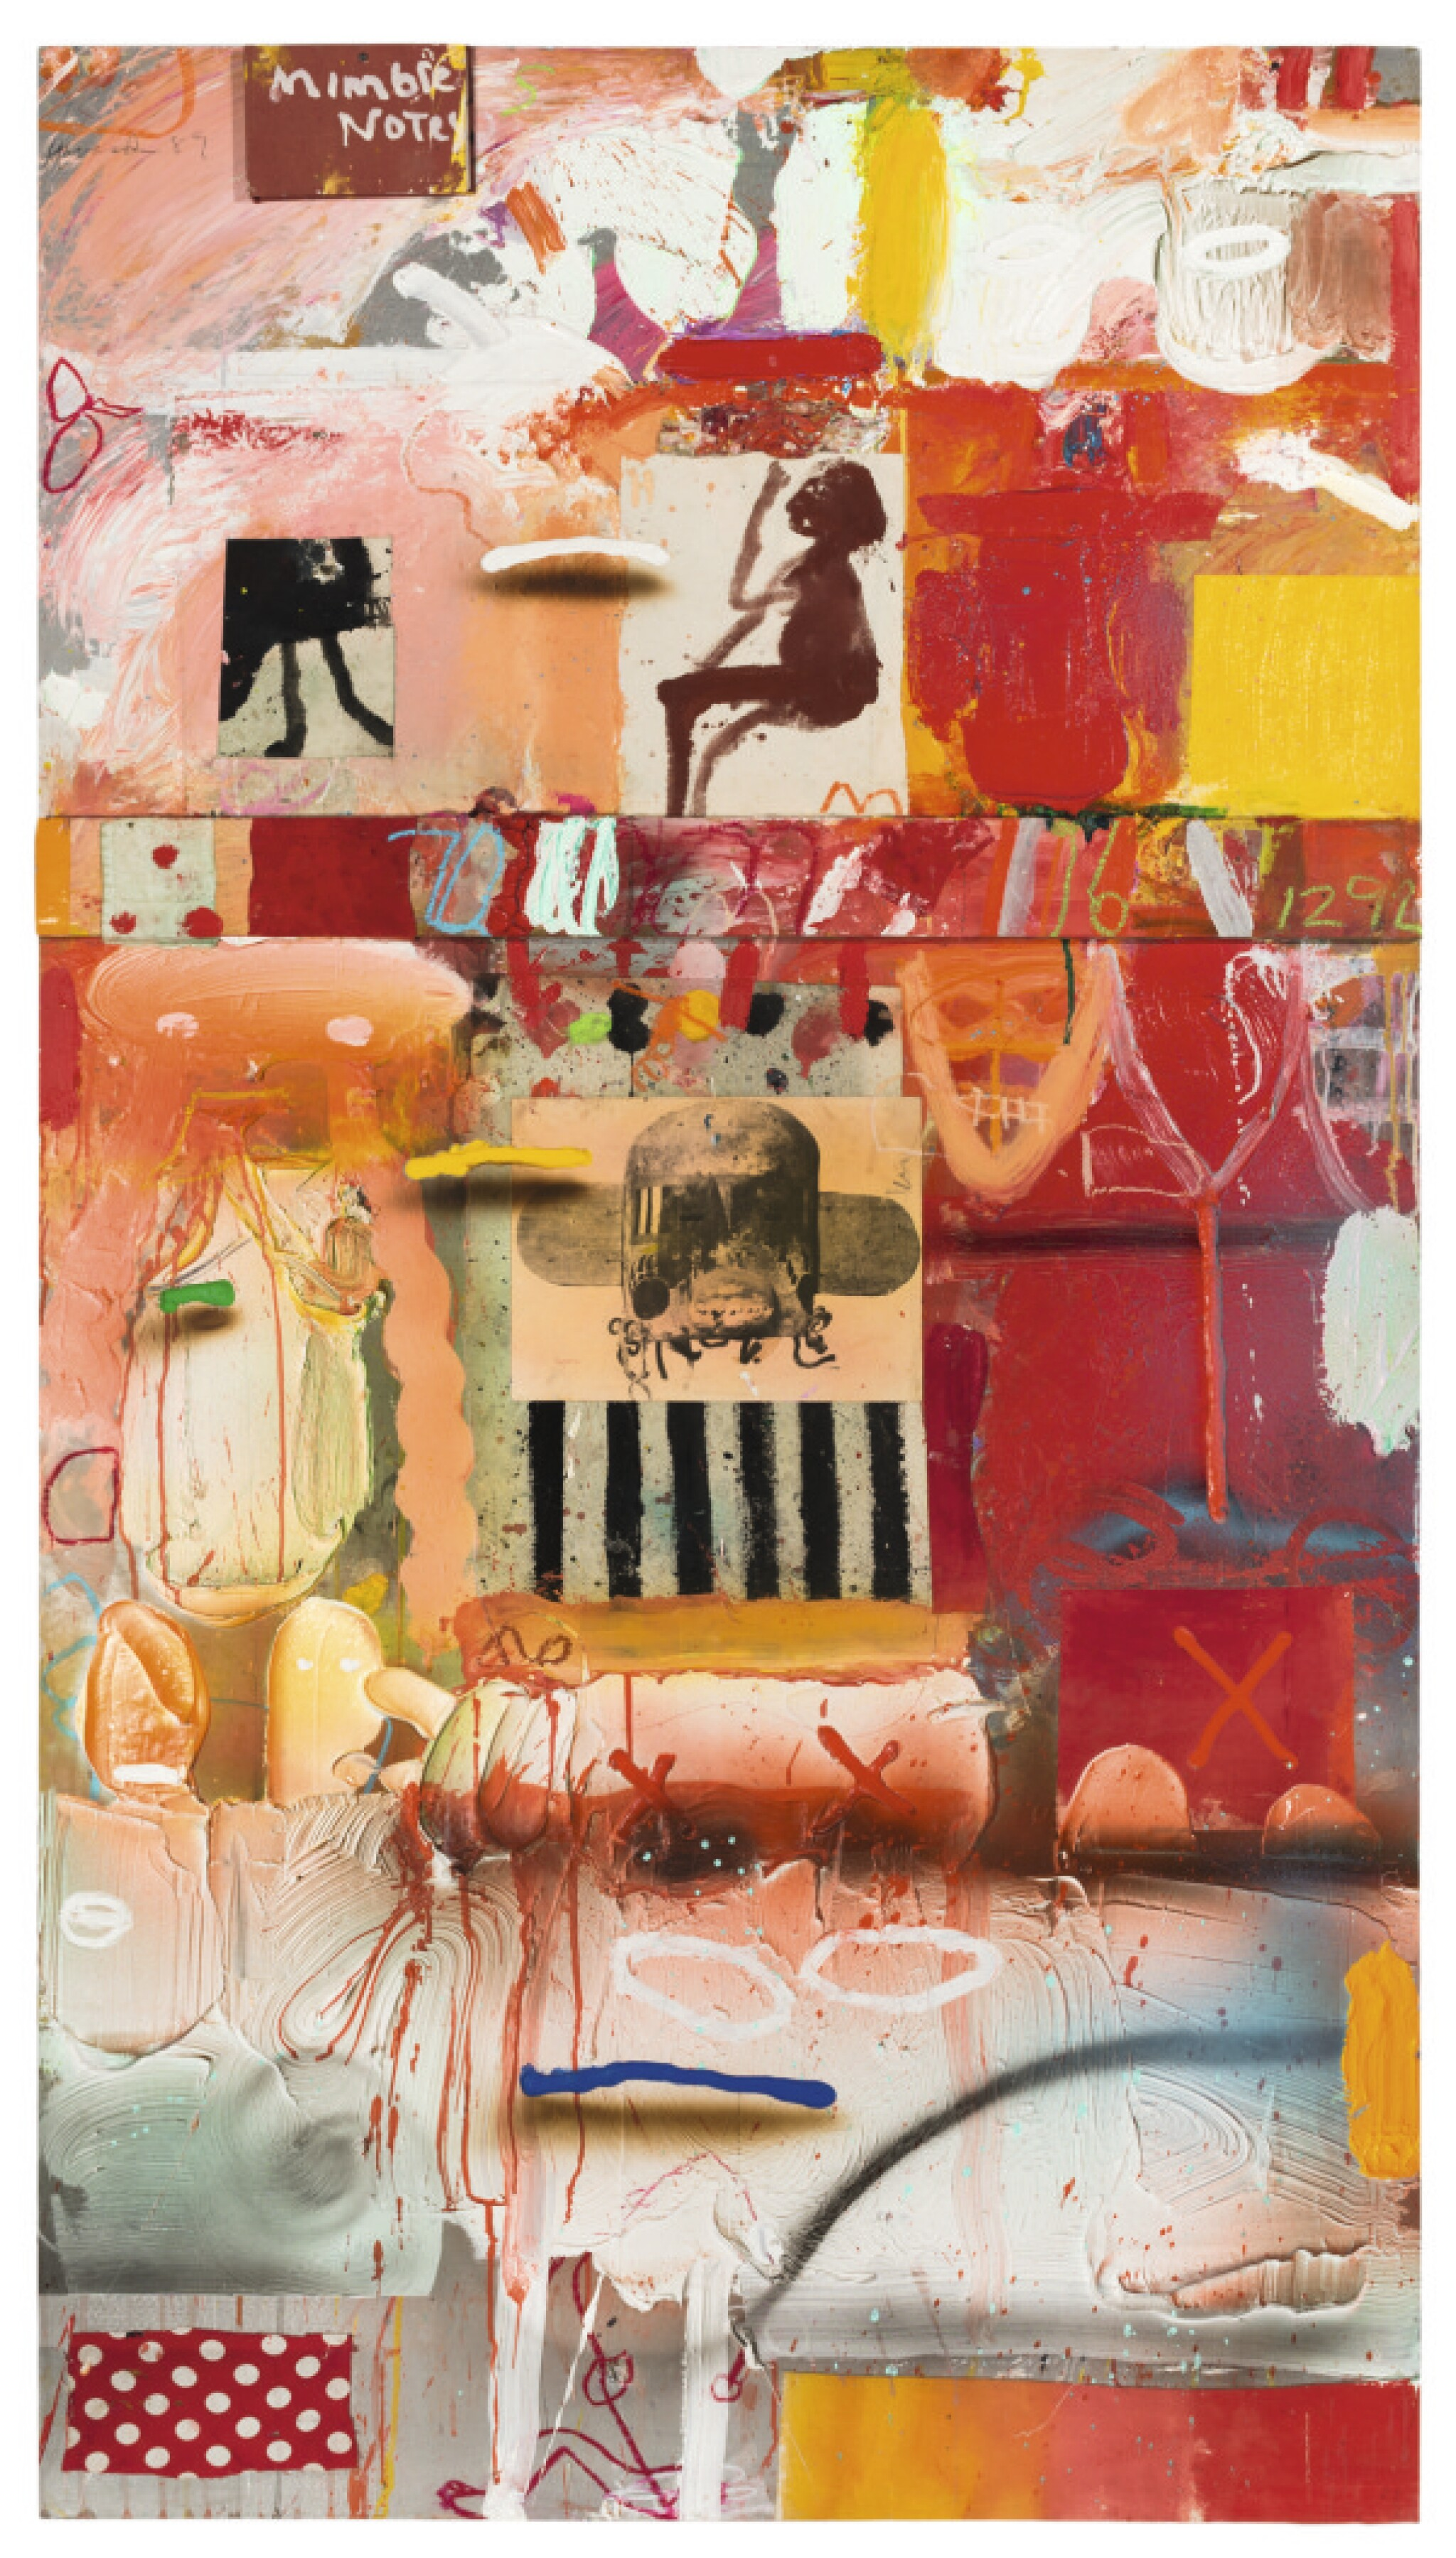 View full screen - View 1 of Lot 2. JAMES HAVARD | MIMBRES NOTES.